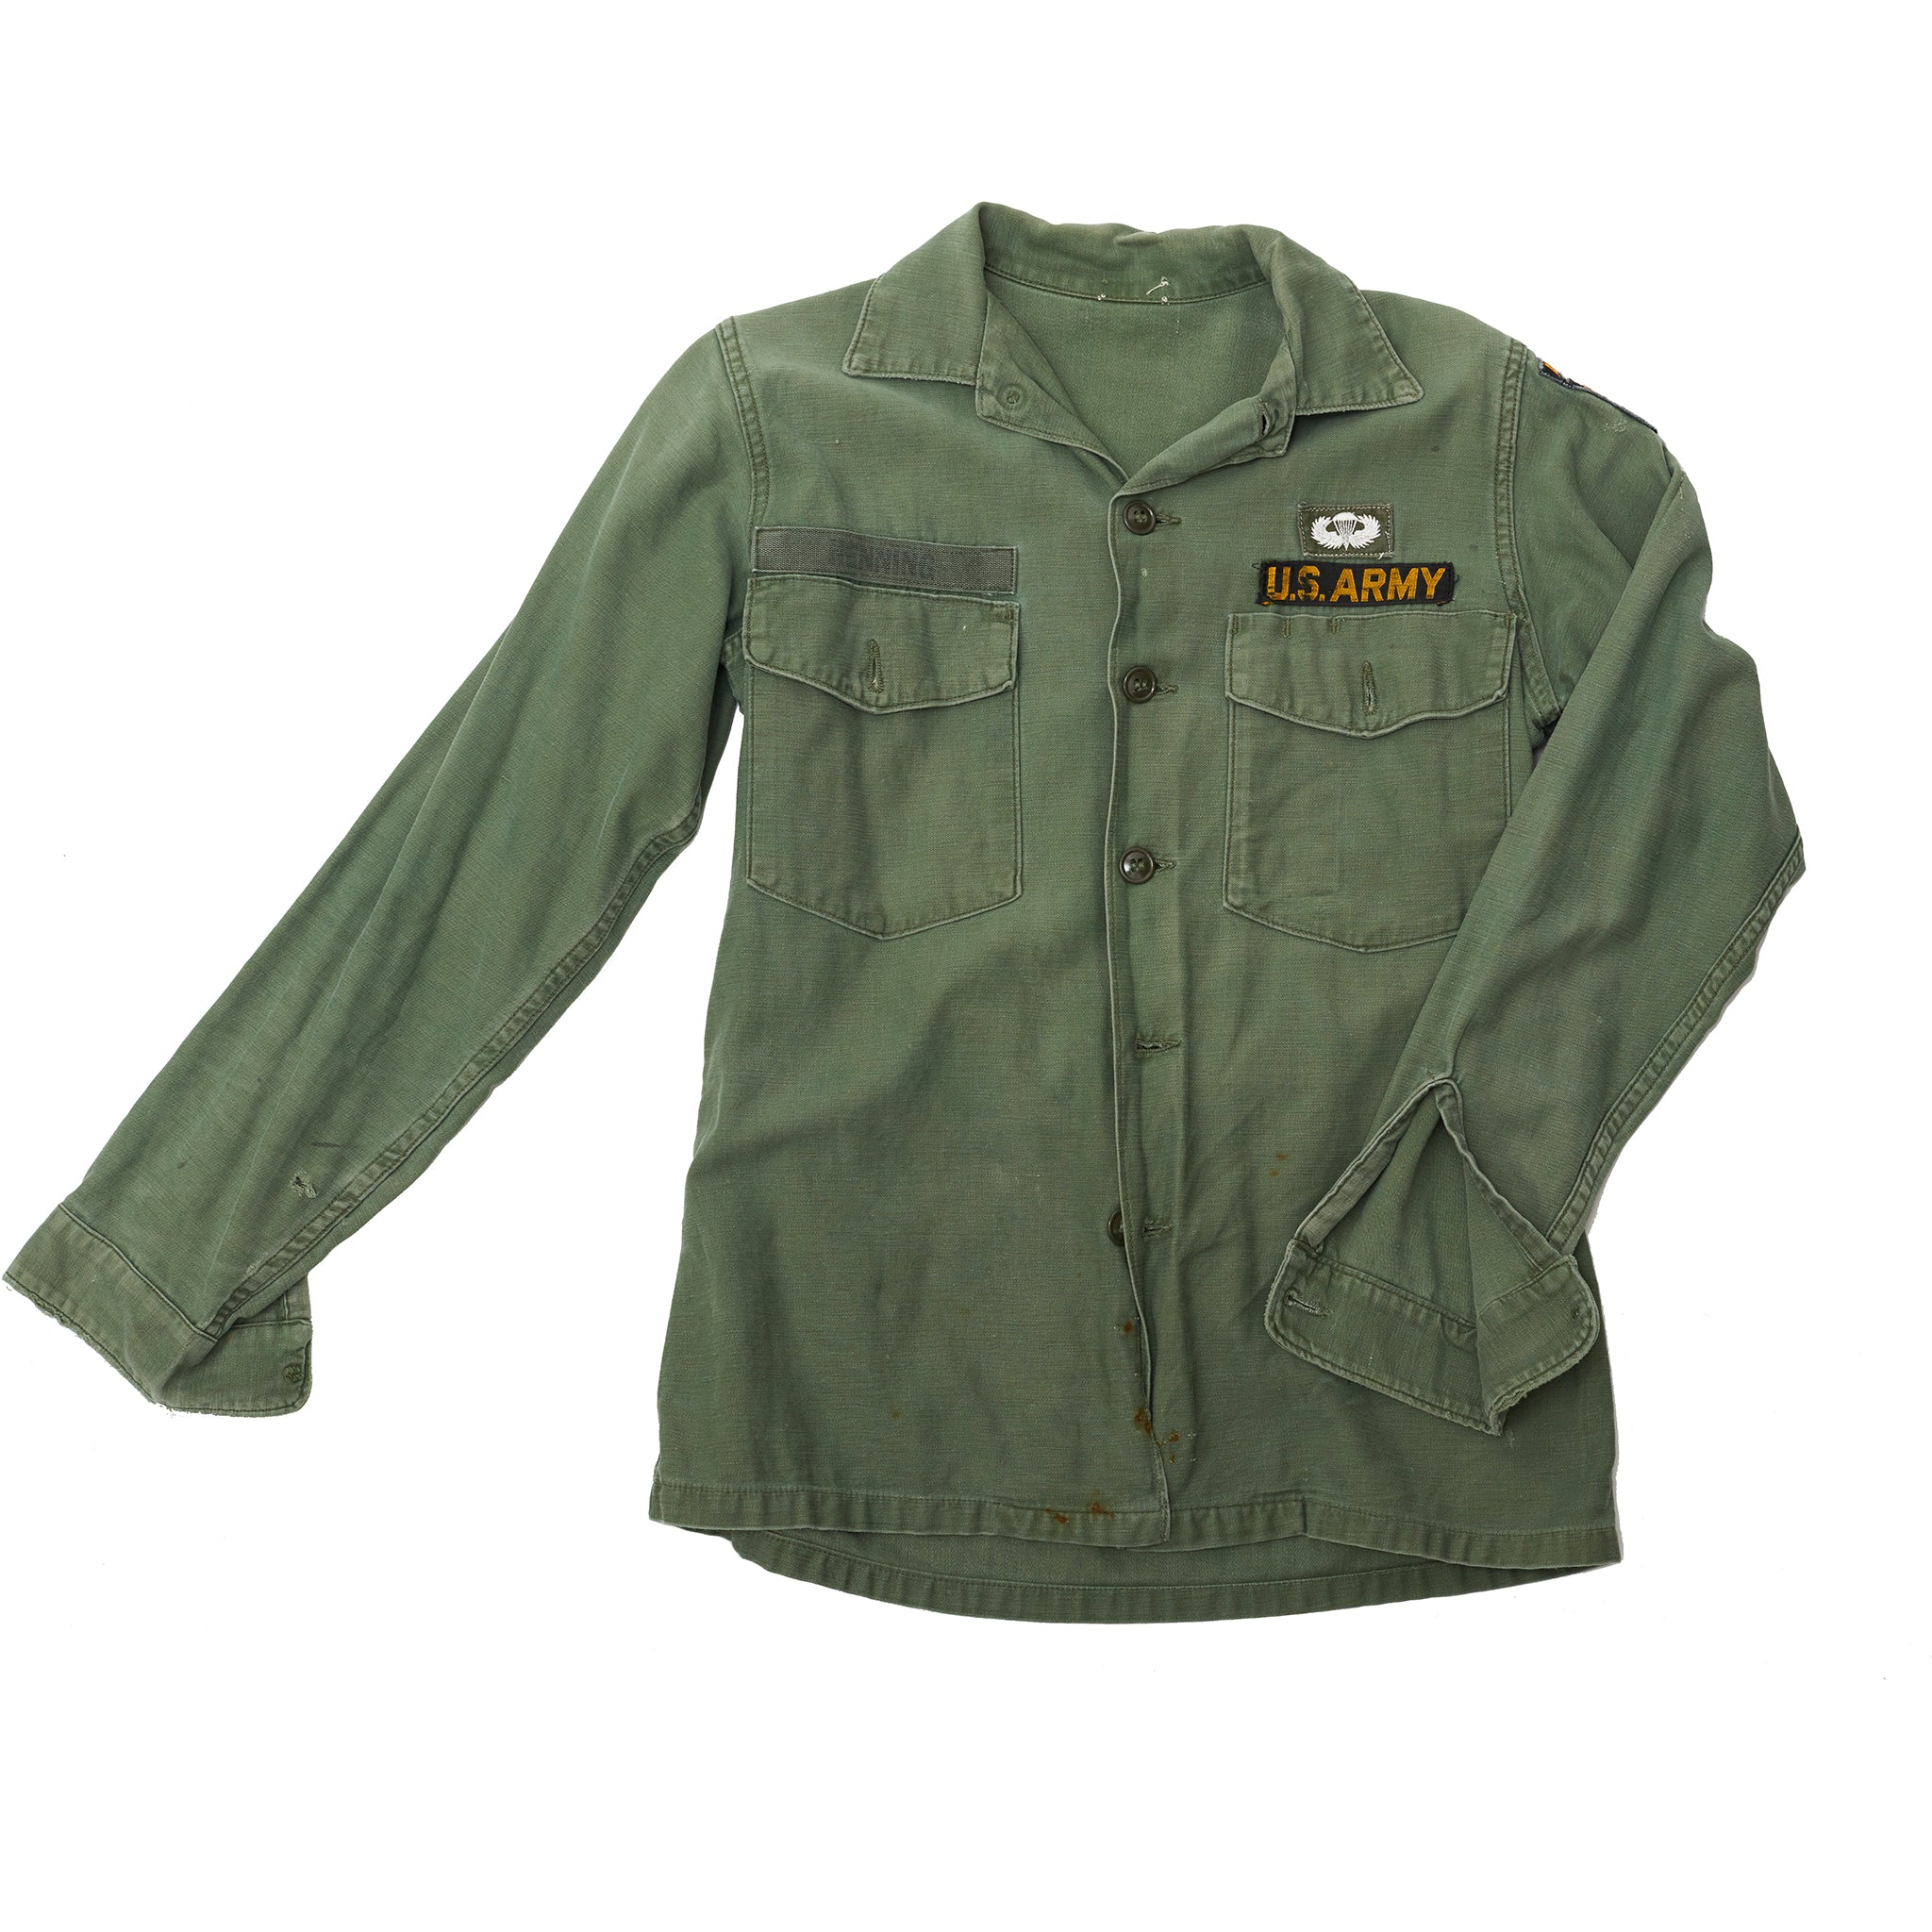 Perfect U.S. Army Shirt with Patches